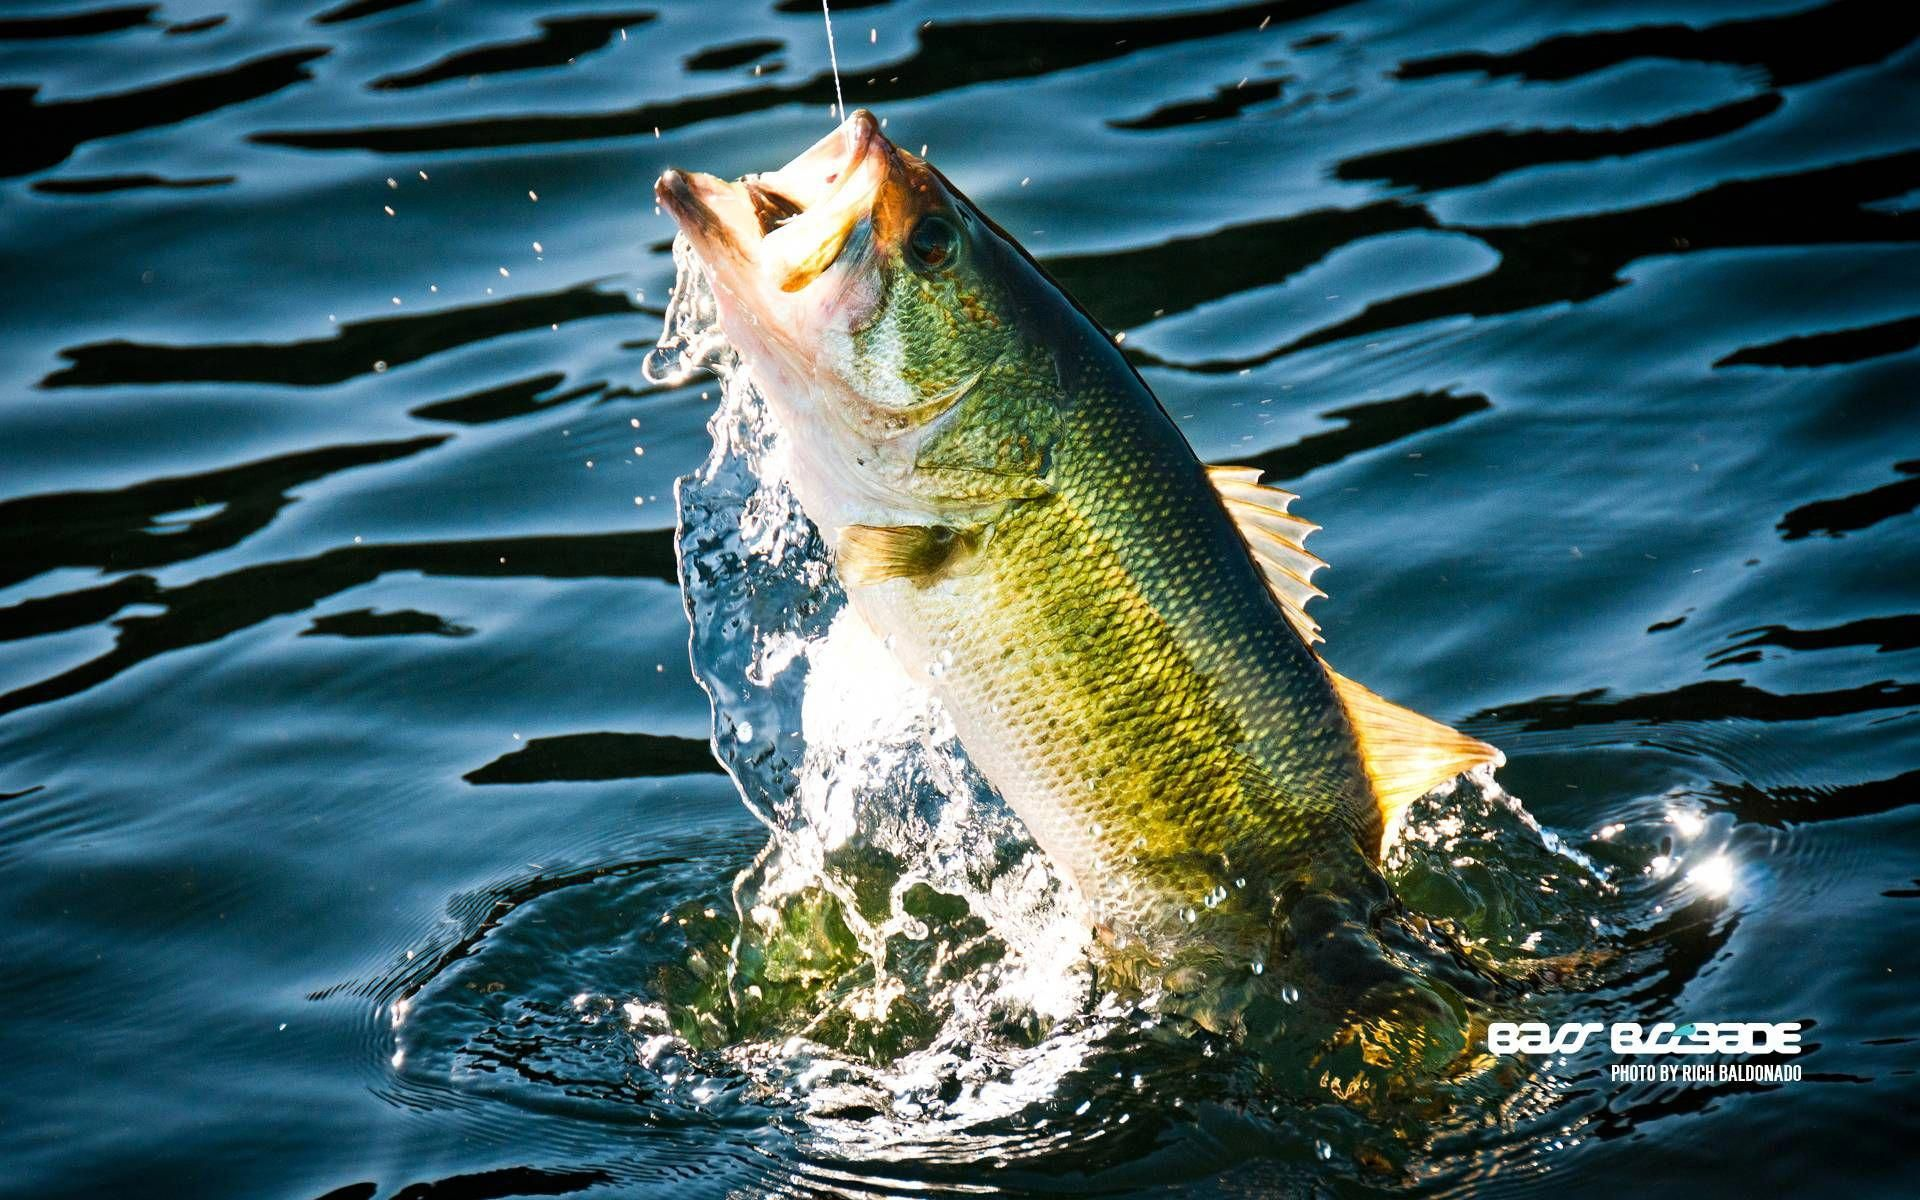 Bass Fishing Wallpaper Backgrounds Wallpaper Cave With Images Fish Wallpaper Koi Fish Fish